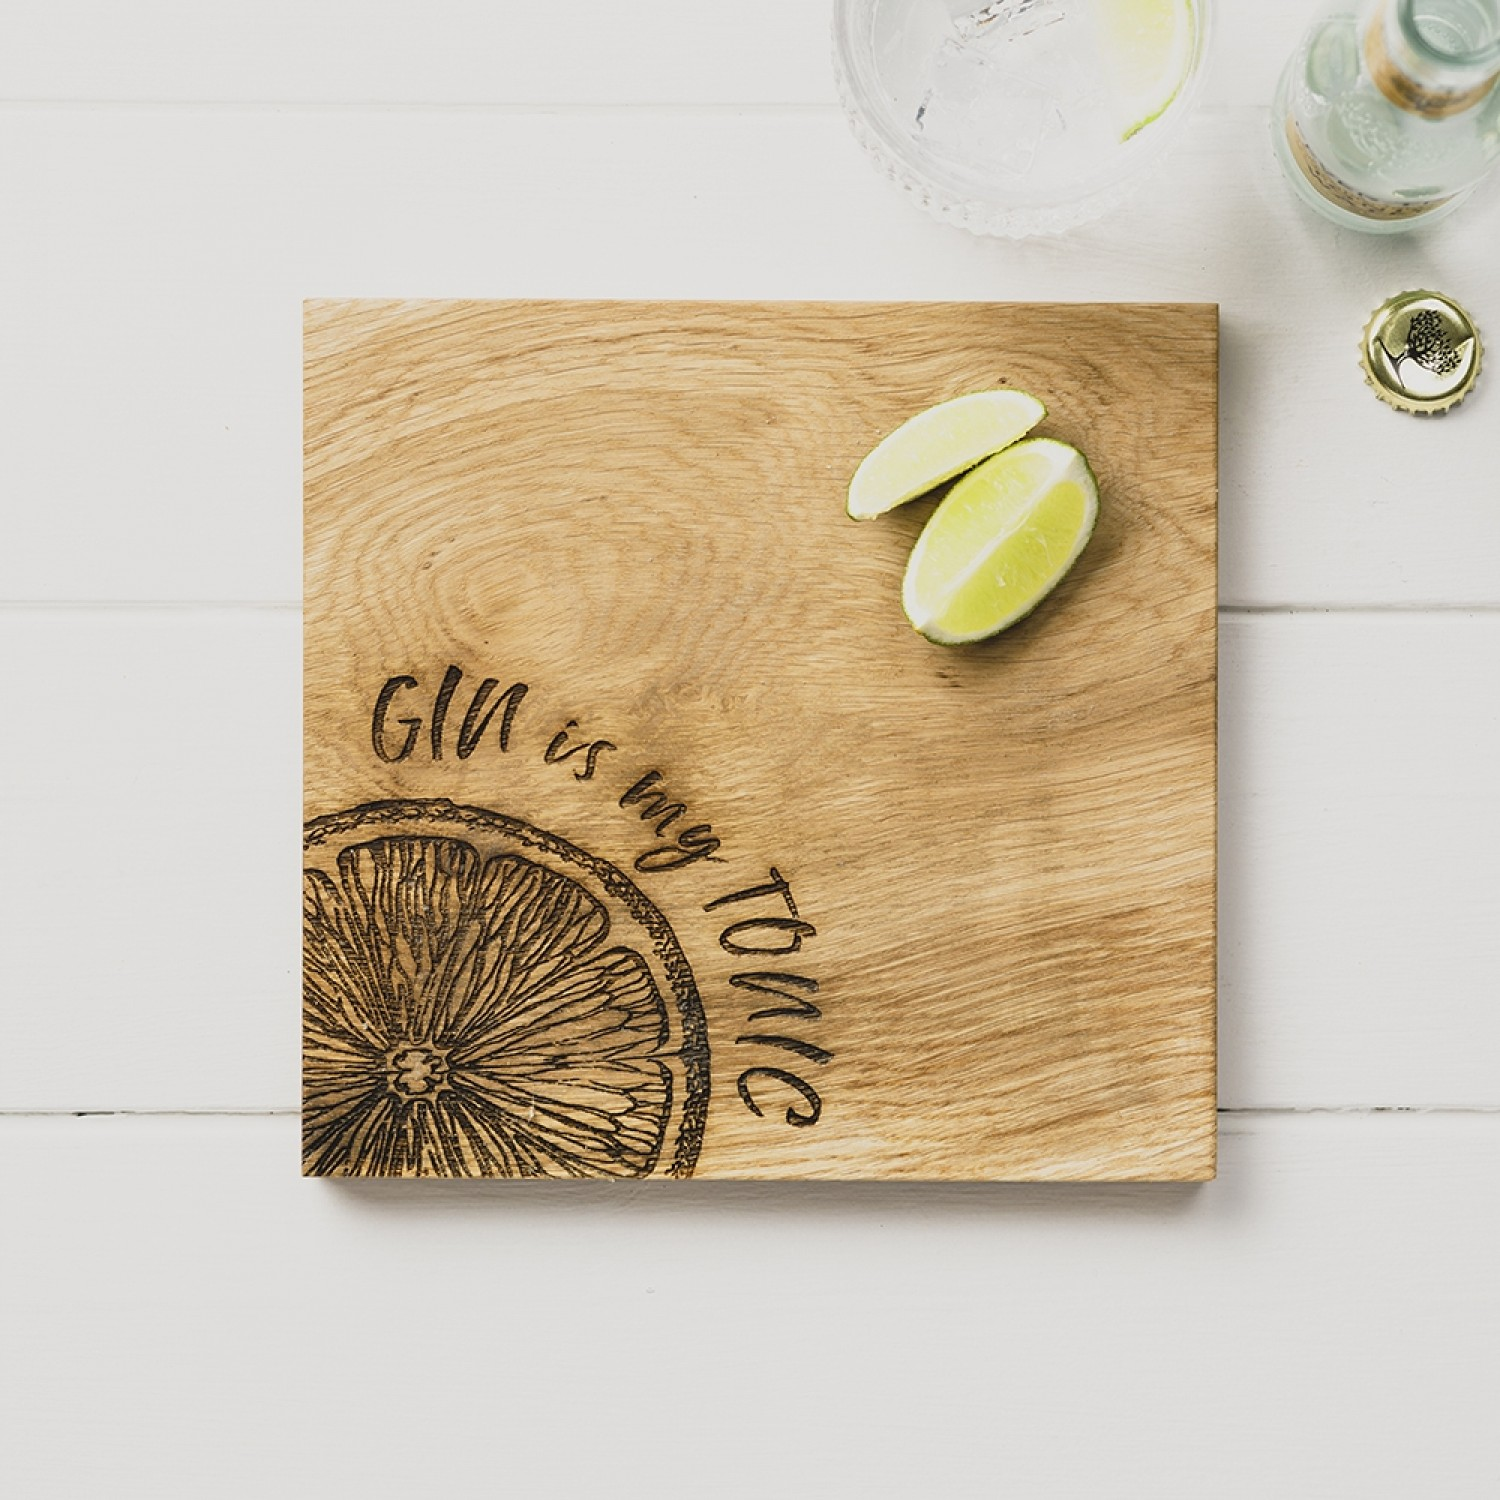 The Just Slate Company Chopping Board (Gin Is My Tonic) 21cm